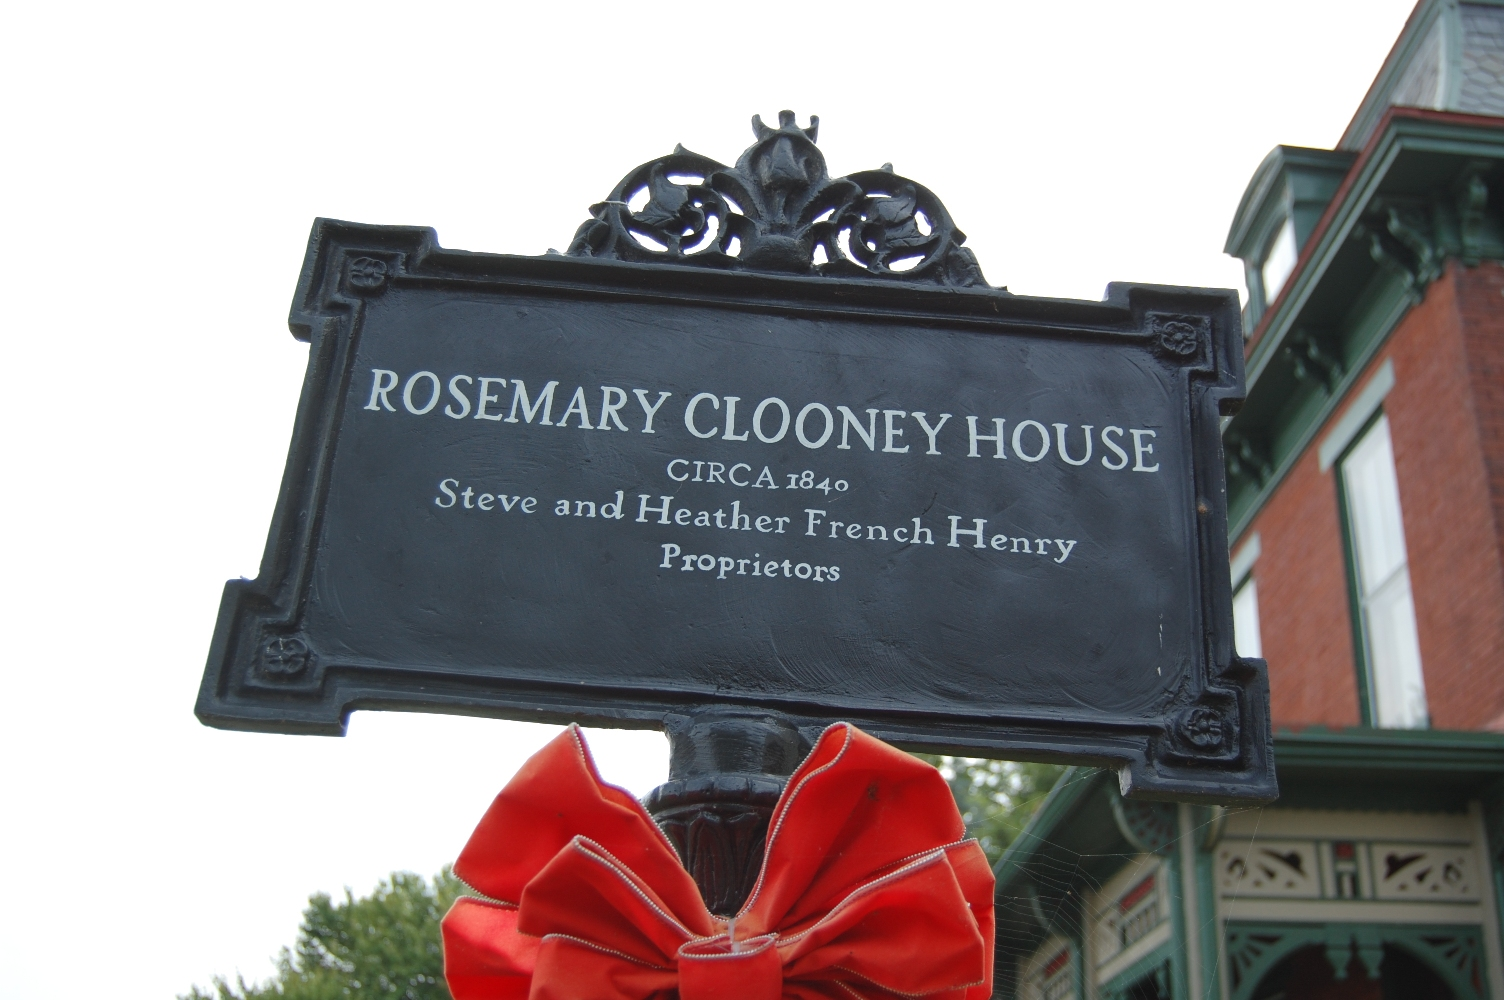 A sign marking the Rosemary Clooney House.